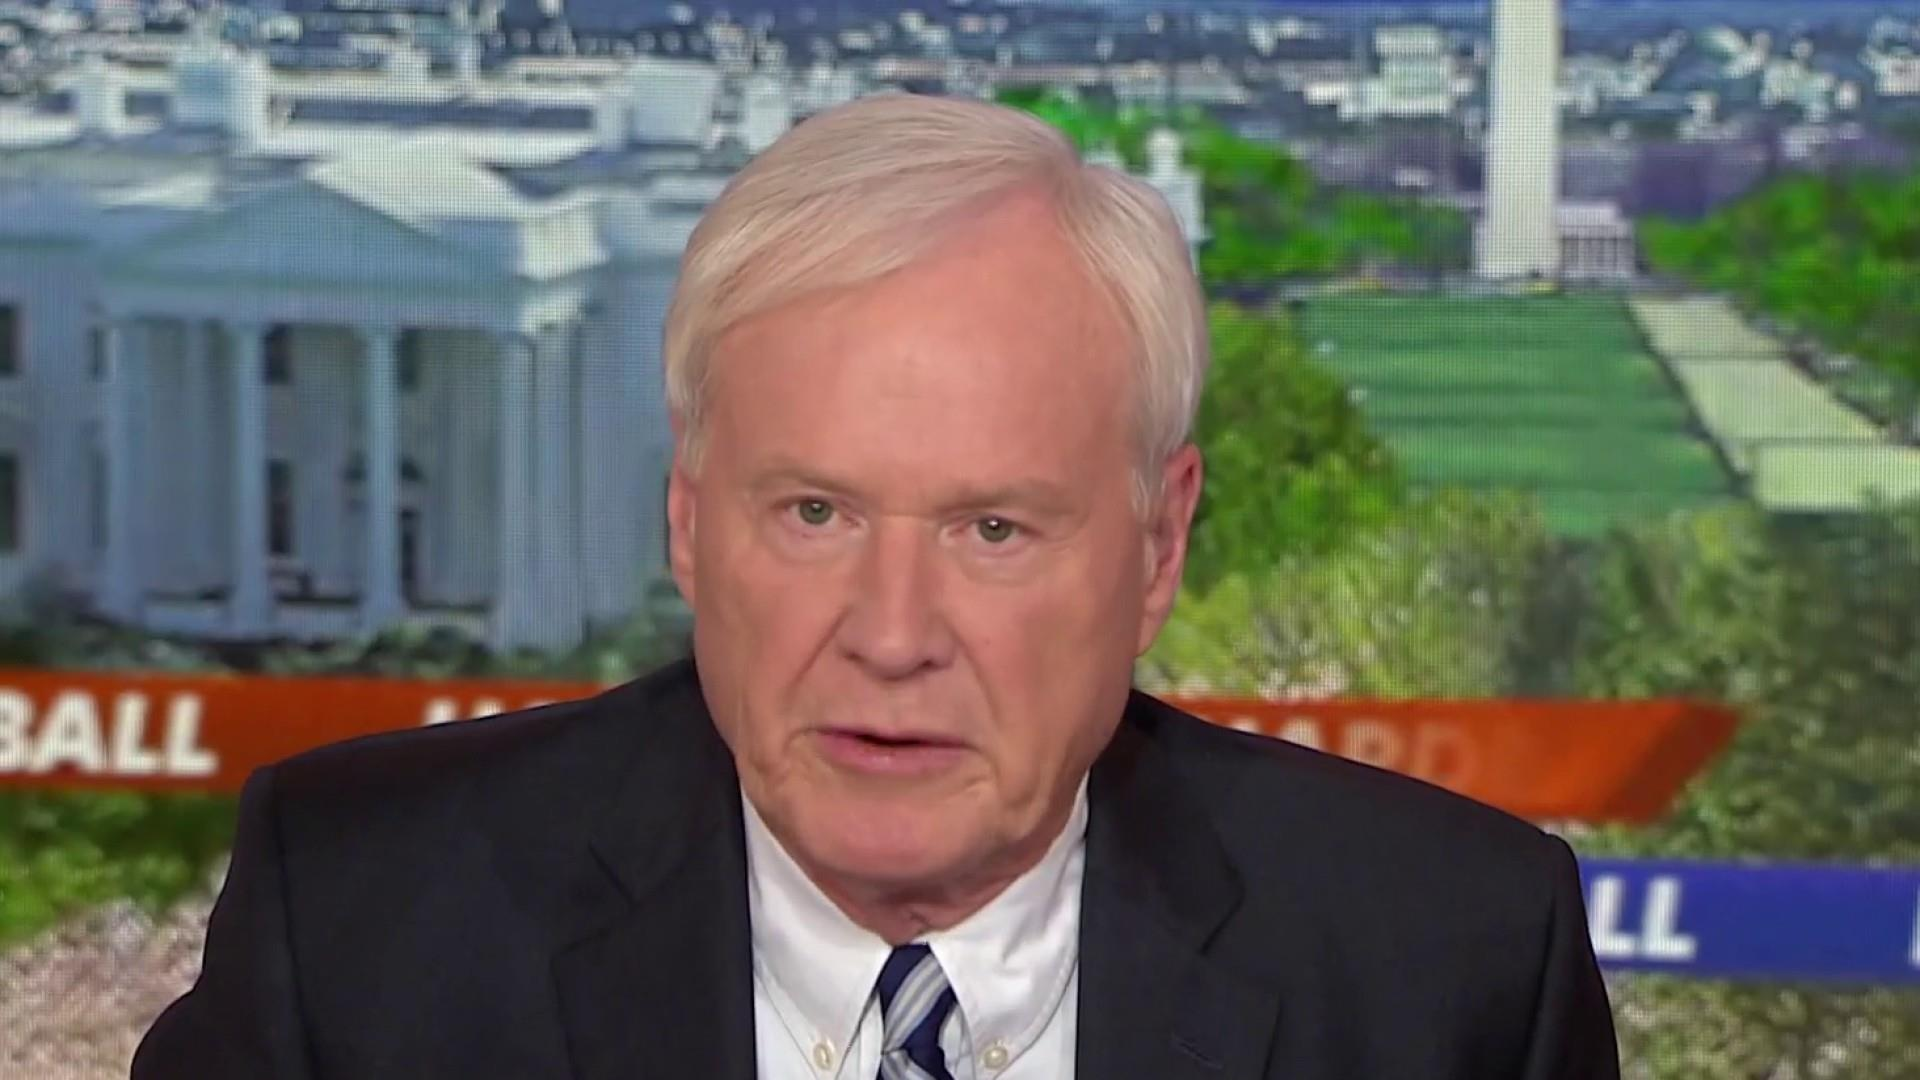 Chris Matthews notes South Carolina's importance in the Democratic Primary